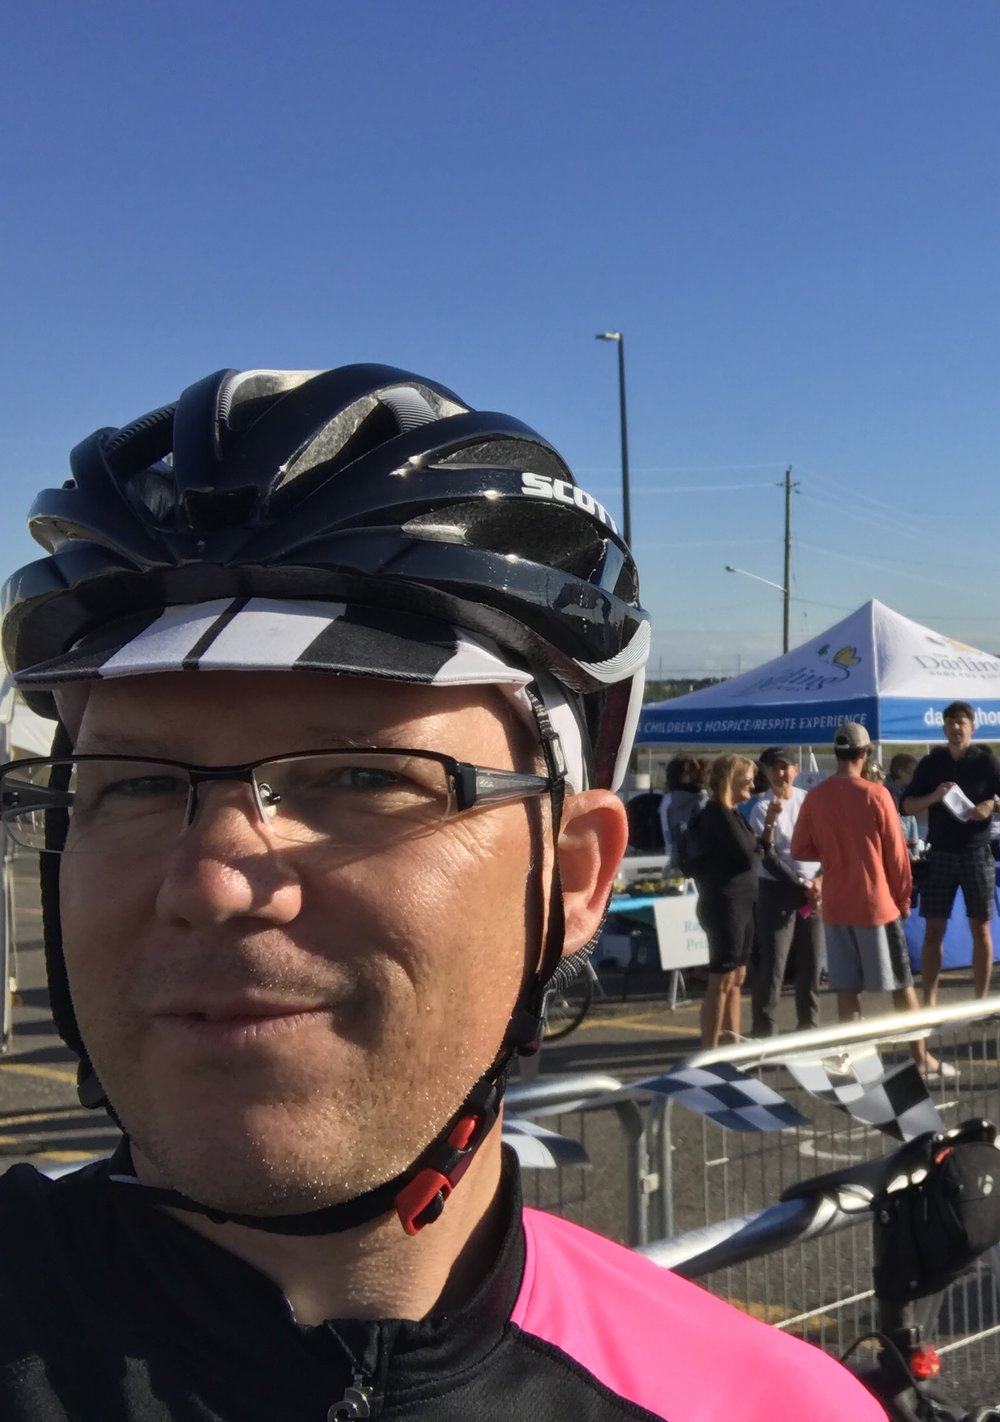 justin  Justin is our  Autobus Breve  ride leader! A wine aficionado and a restaurant expert! We are grateful to have him on board volunteering his time to develop our members' group riding skills, and help us grow the club's presence within our cycling community. Ask him about Cali Zins!